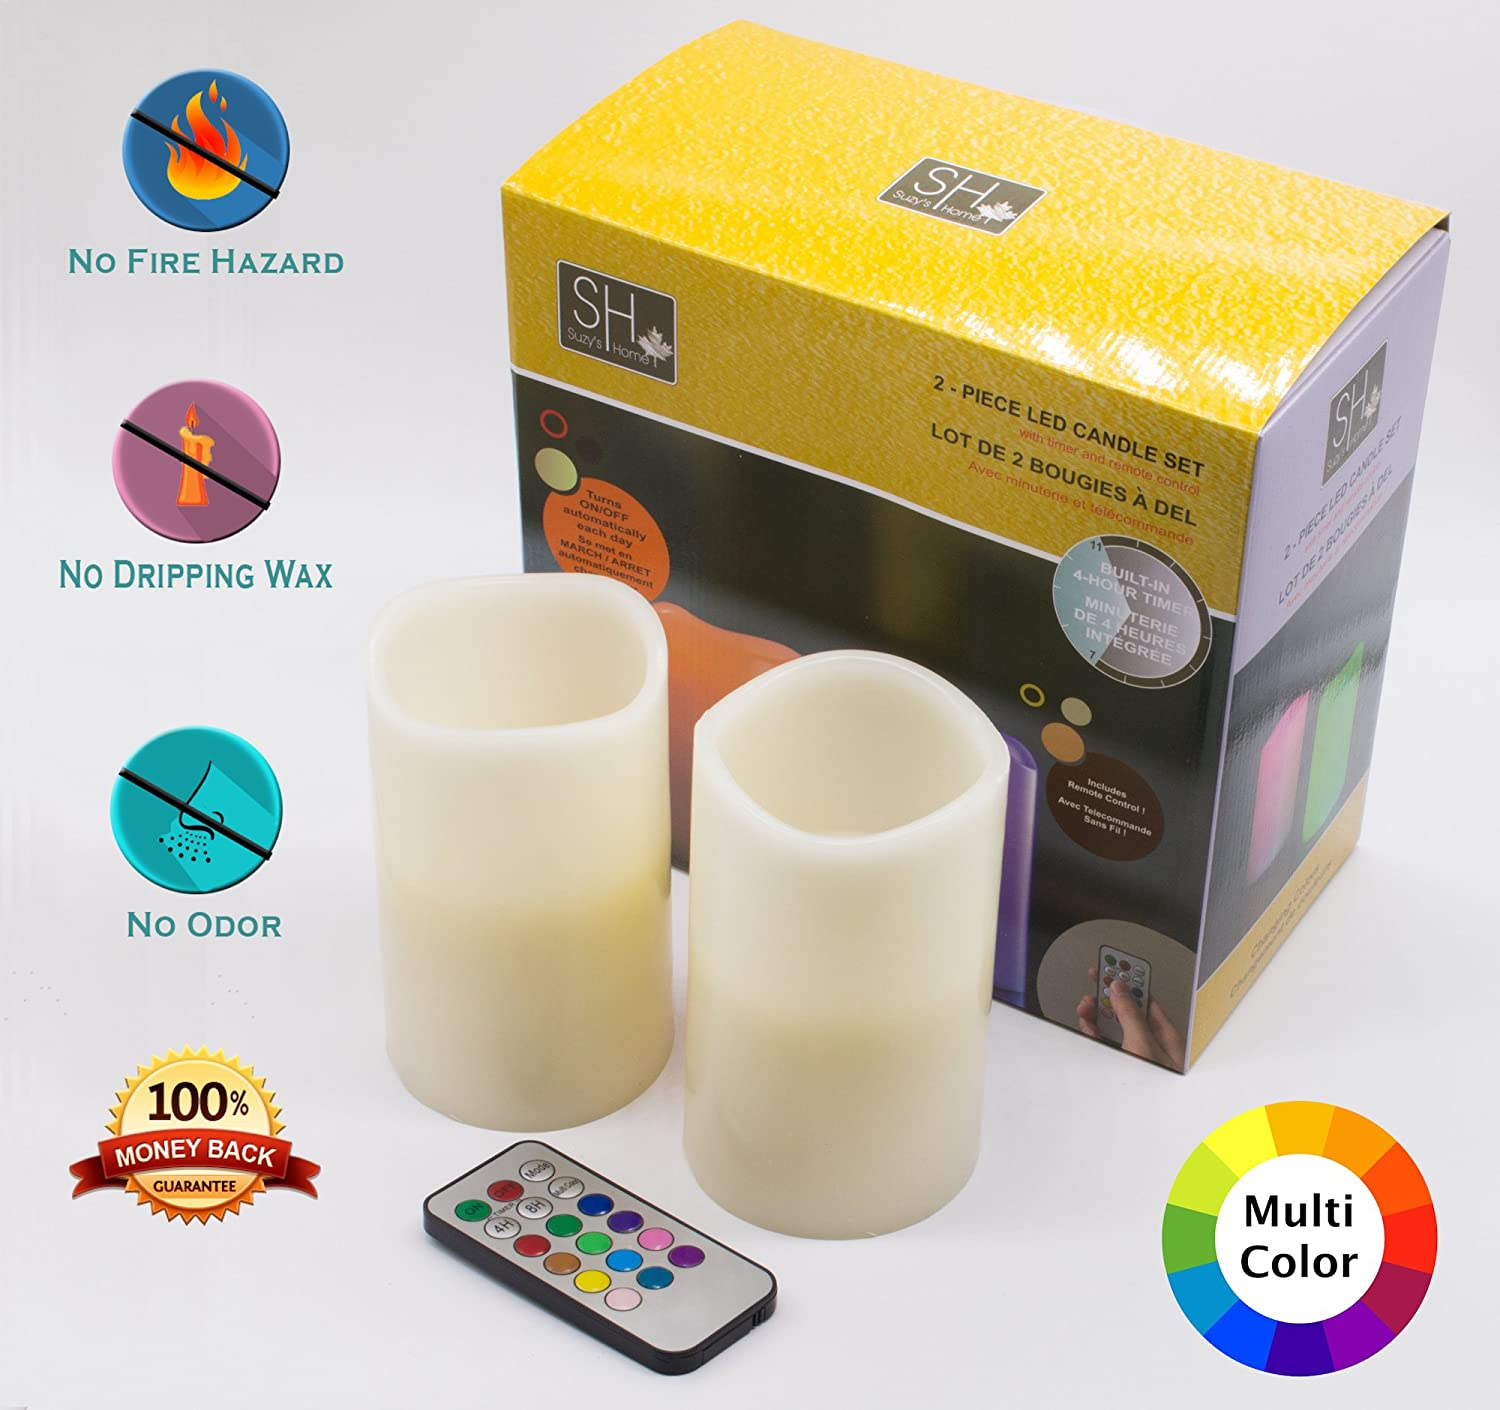 Set of Two Multi-Color LED Candles With Remote Control, From Suzy's Home Collection Toy Target Inc.